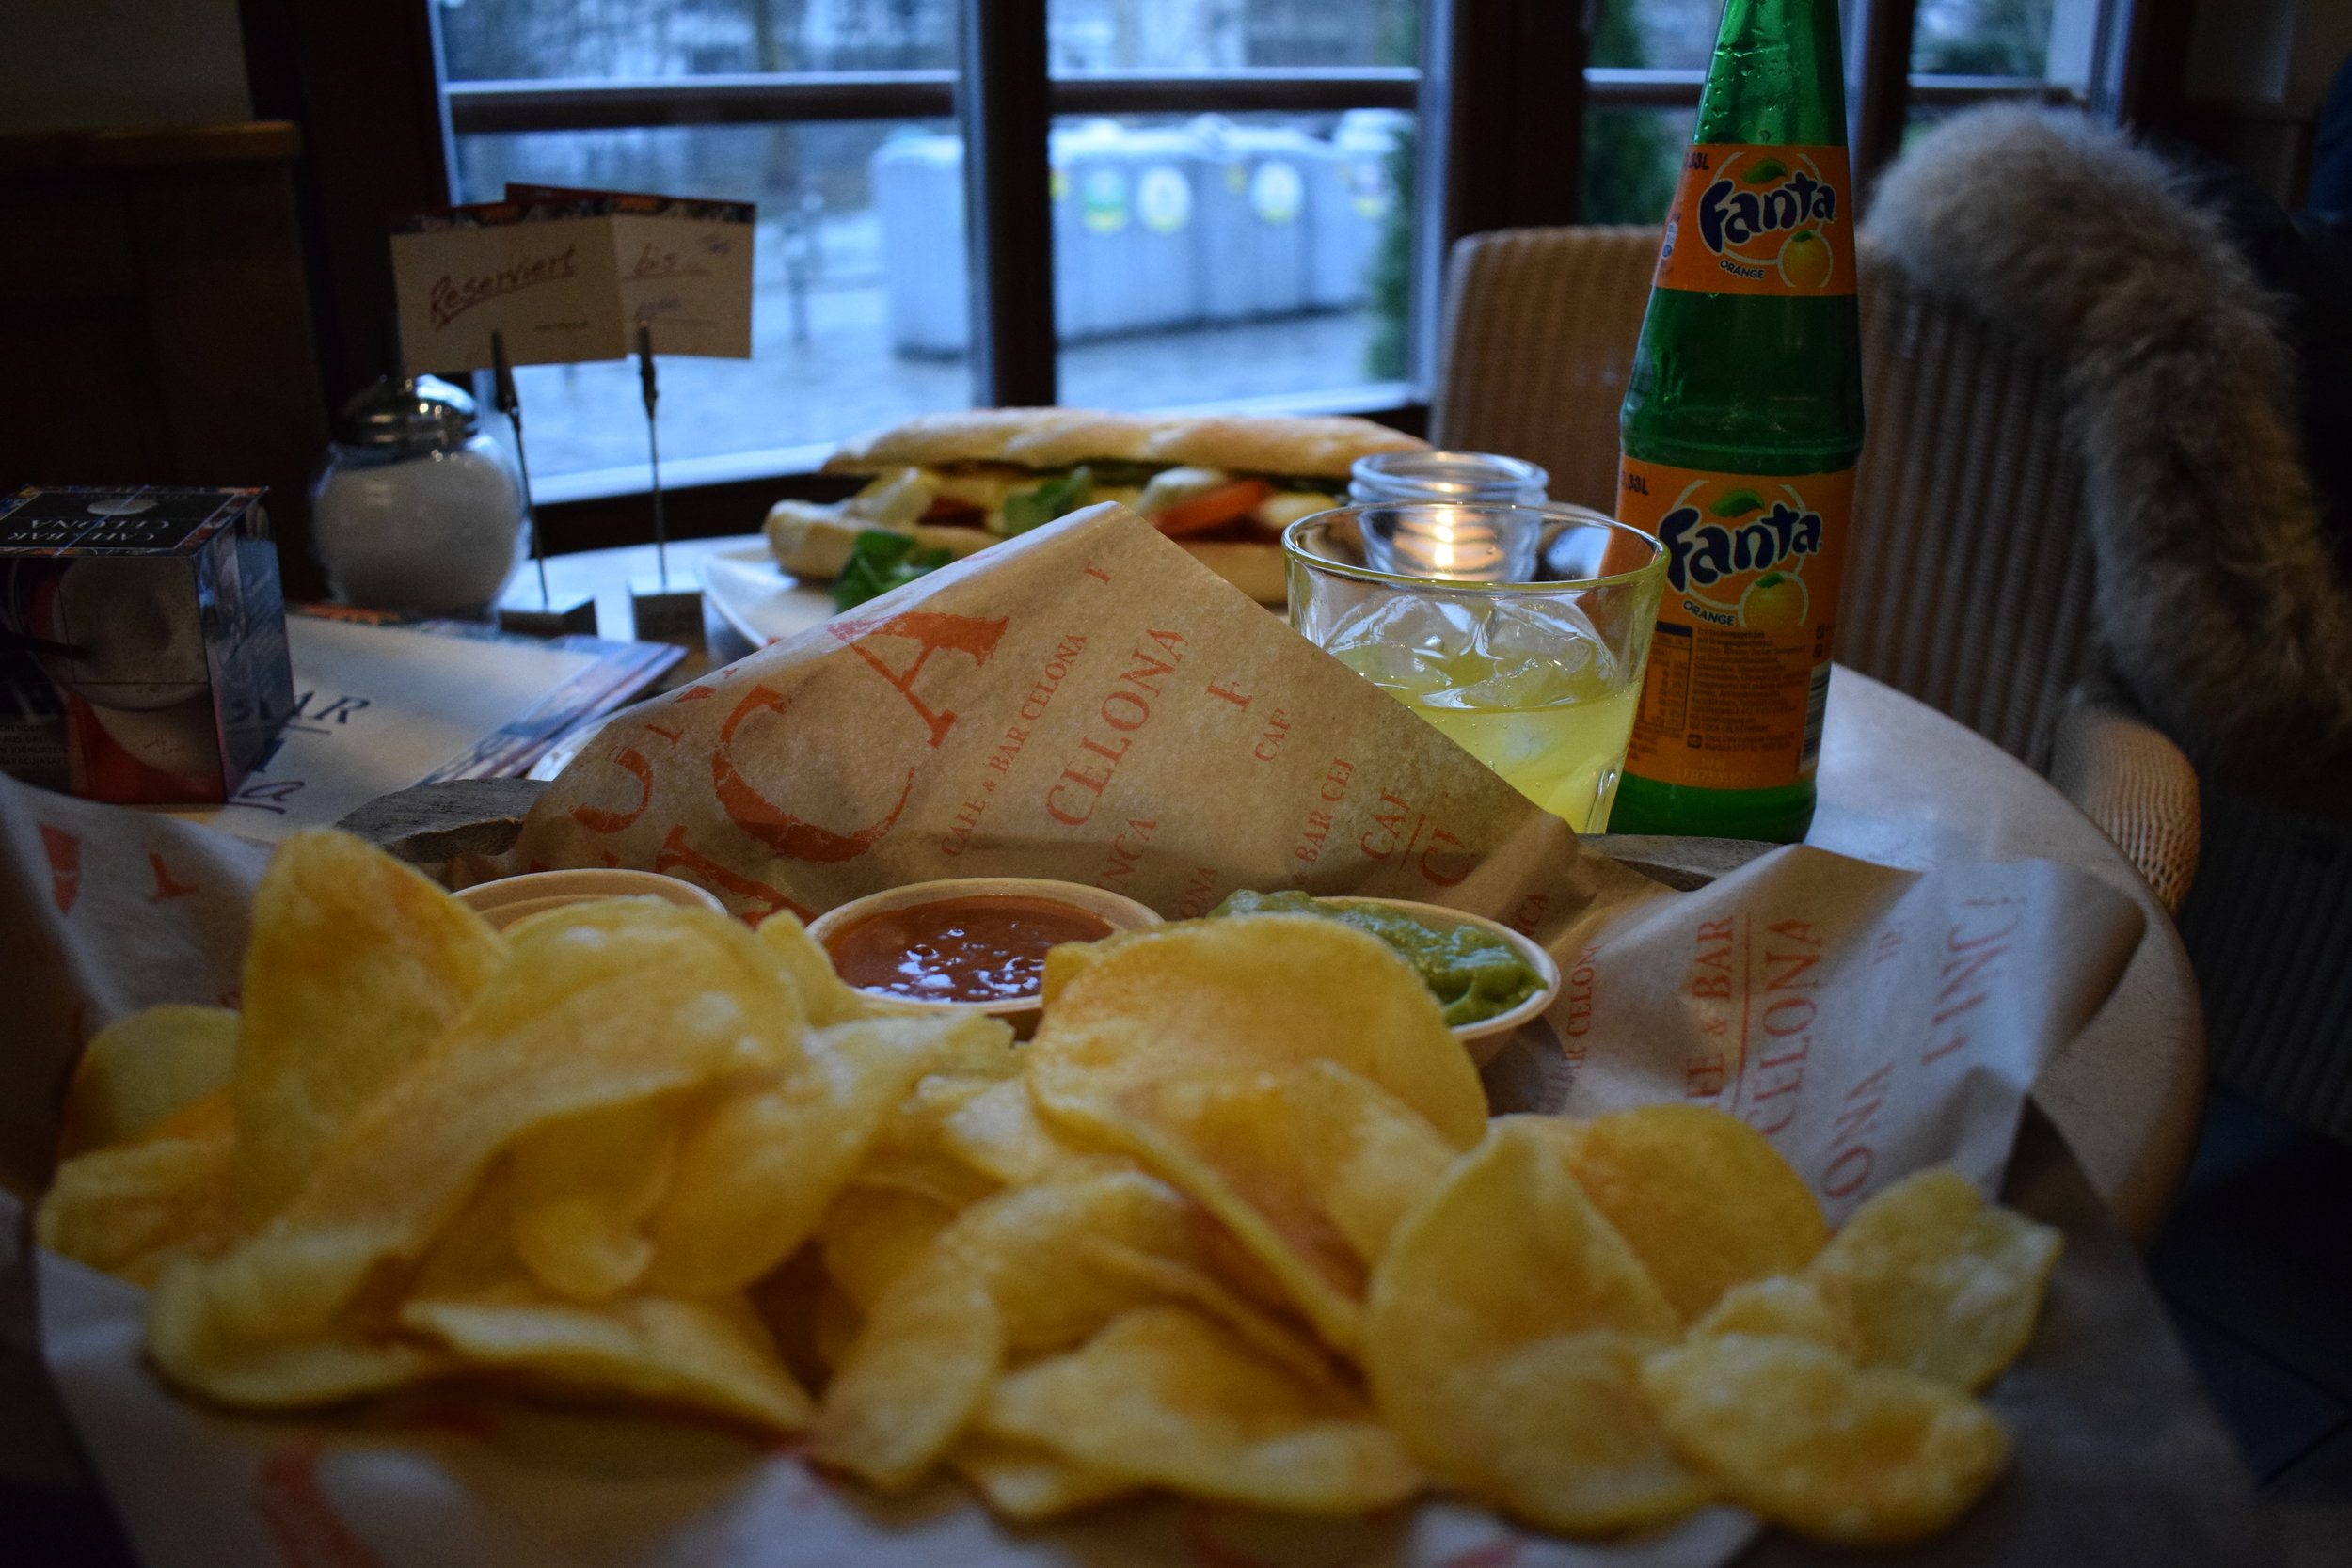 Fresh ly-made potato chips and a bottle of Fanta - which actually originated in Germany - at    Café & Bar Celona   .